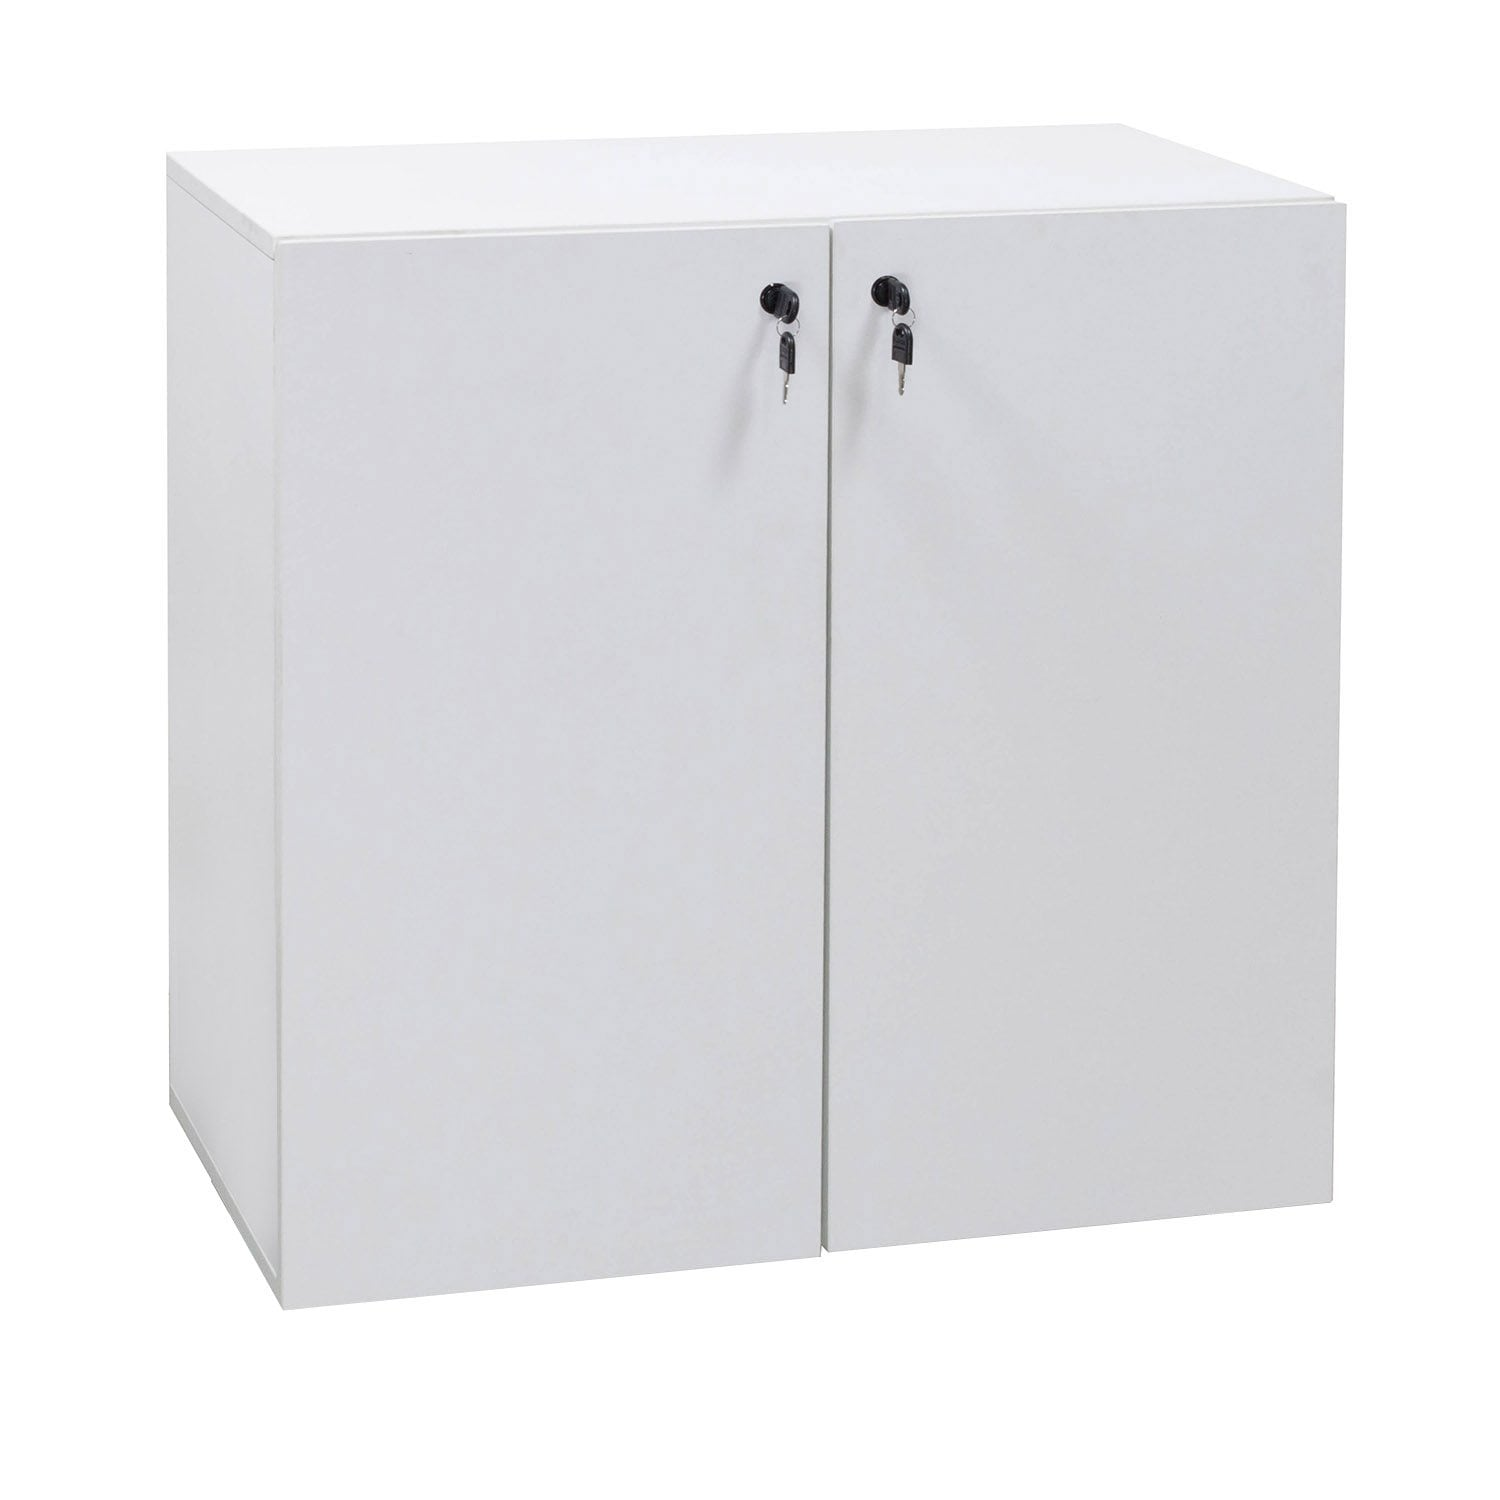 Louis 32 in Melamine Storage Cabinet, White